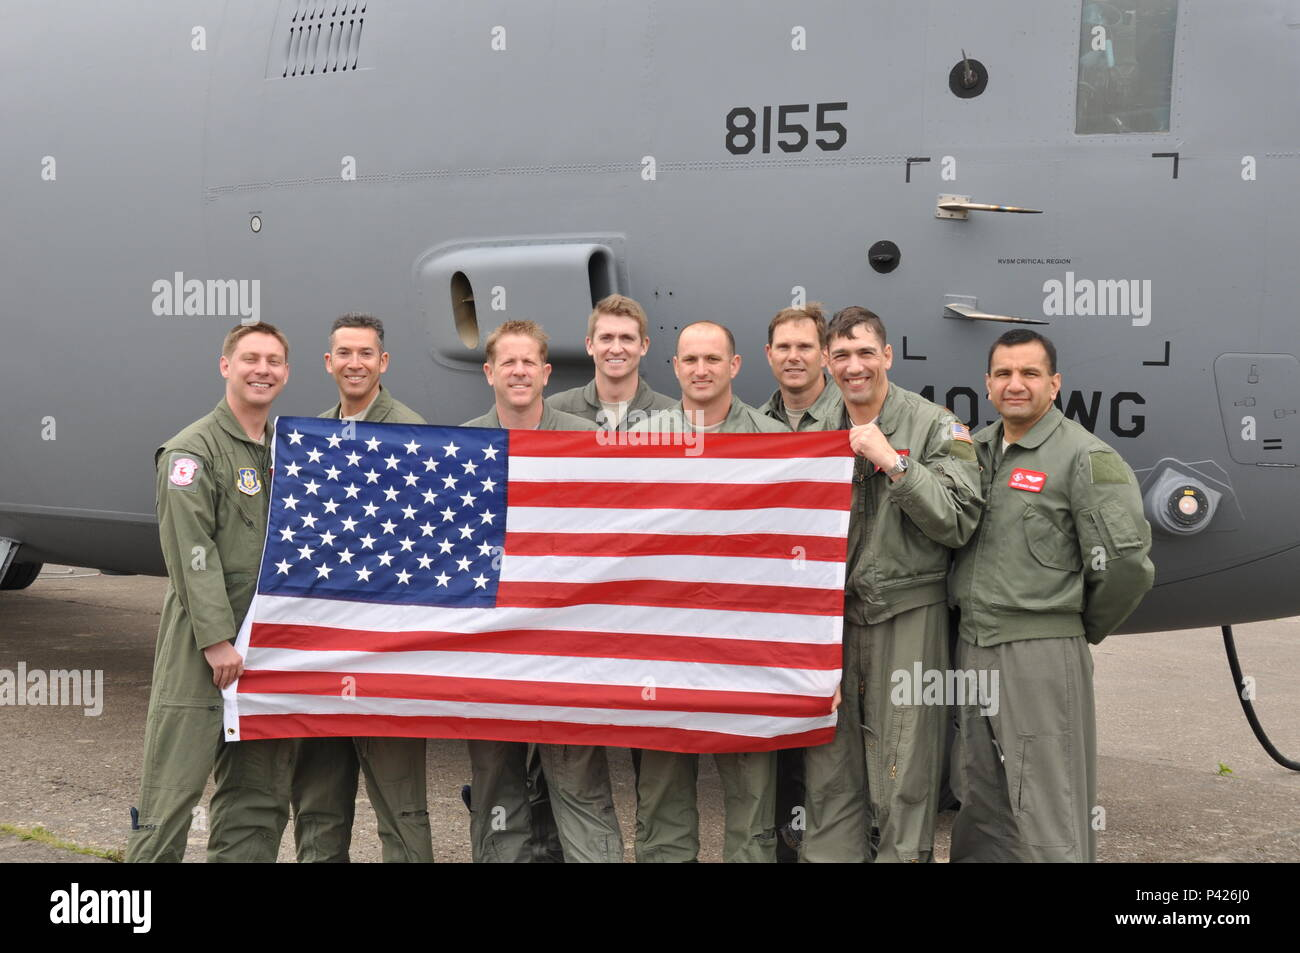 Members of the 815th Airlift Squadron pose with a U.S. flag next to the C-130J.  The 815th AS provided aerial transport of U.S. and French Airborne troops for the scheduled massive parachute drops.  More than 380 service from Europe and affiliated D-Day historical units are participating in the 72nd anniversary as a part of Joint Task Force D-Day 72.  The Task Force, based in Sainte-Mère-Église, France, is supporting local events across Normandy, from May 30 - 6 June, 2016 to commemorate the selfless actions by all of the allies on D-Day that continue to resonate 72 years later.  (U.S. Air For Stock Photo